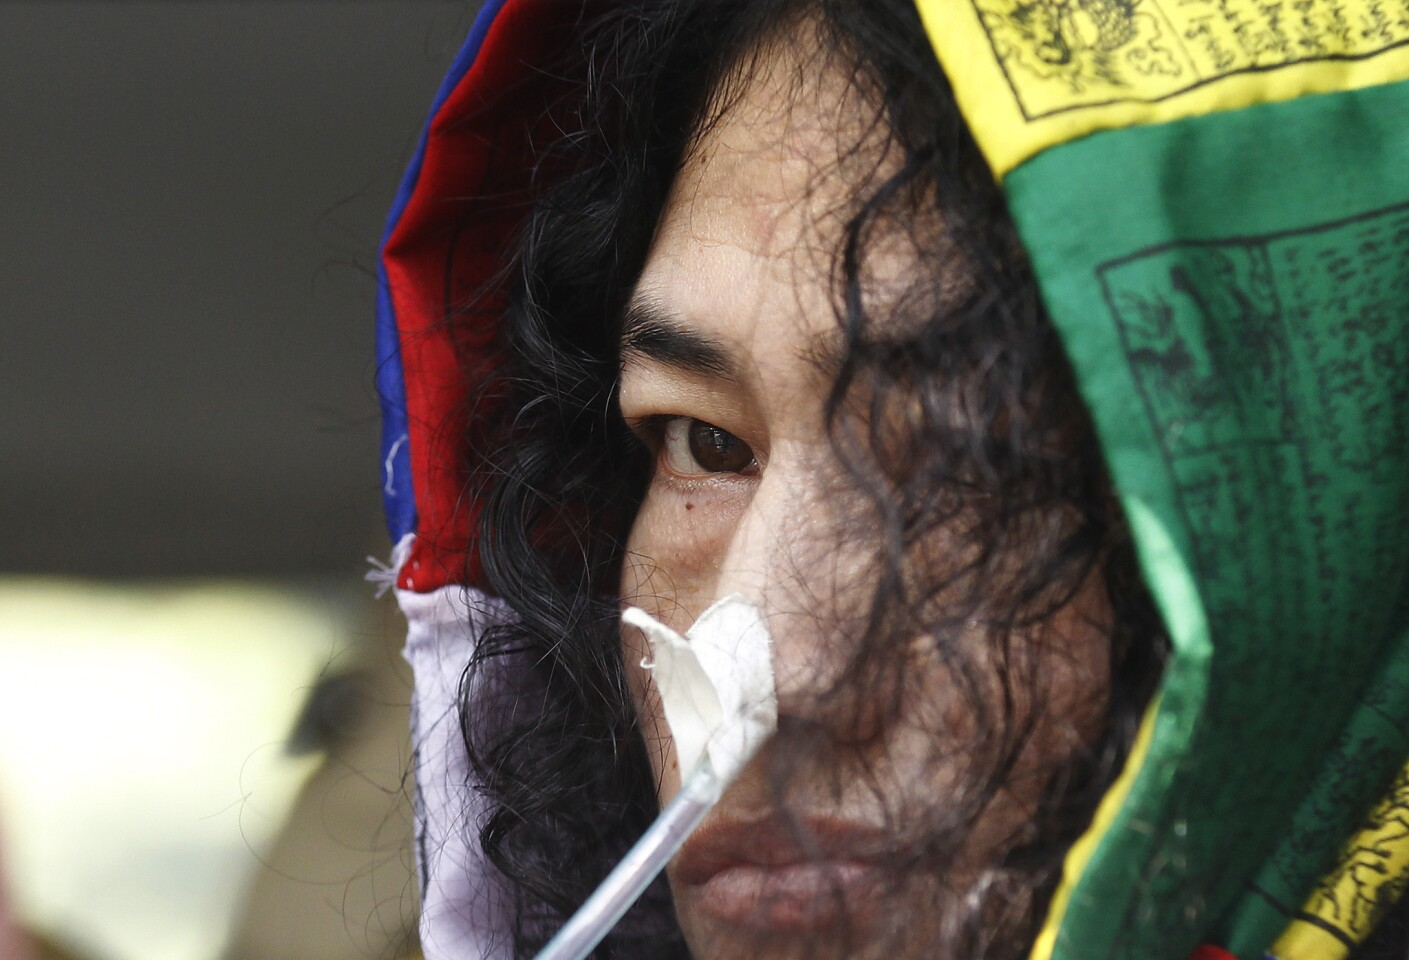 Manipuri civil rights activist Irom Sharmila leaves after an appearance at the Patiala House Court in New Delhi in October 2015.